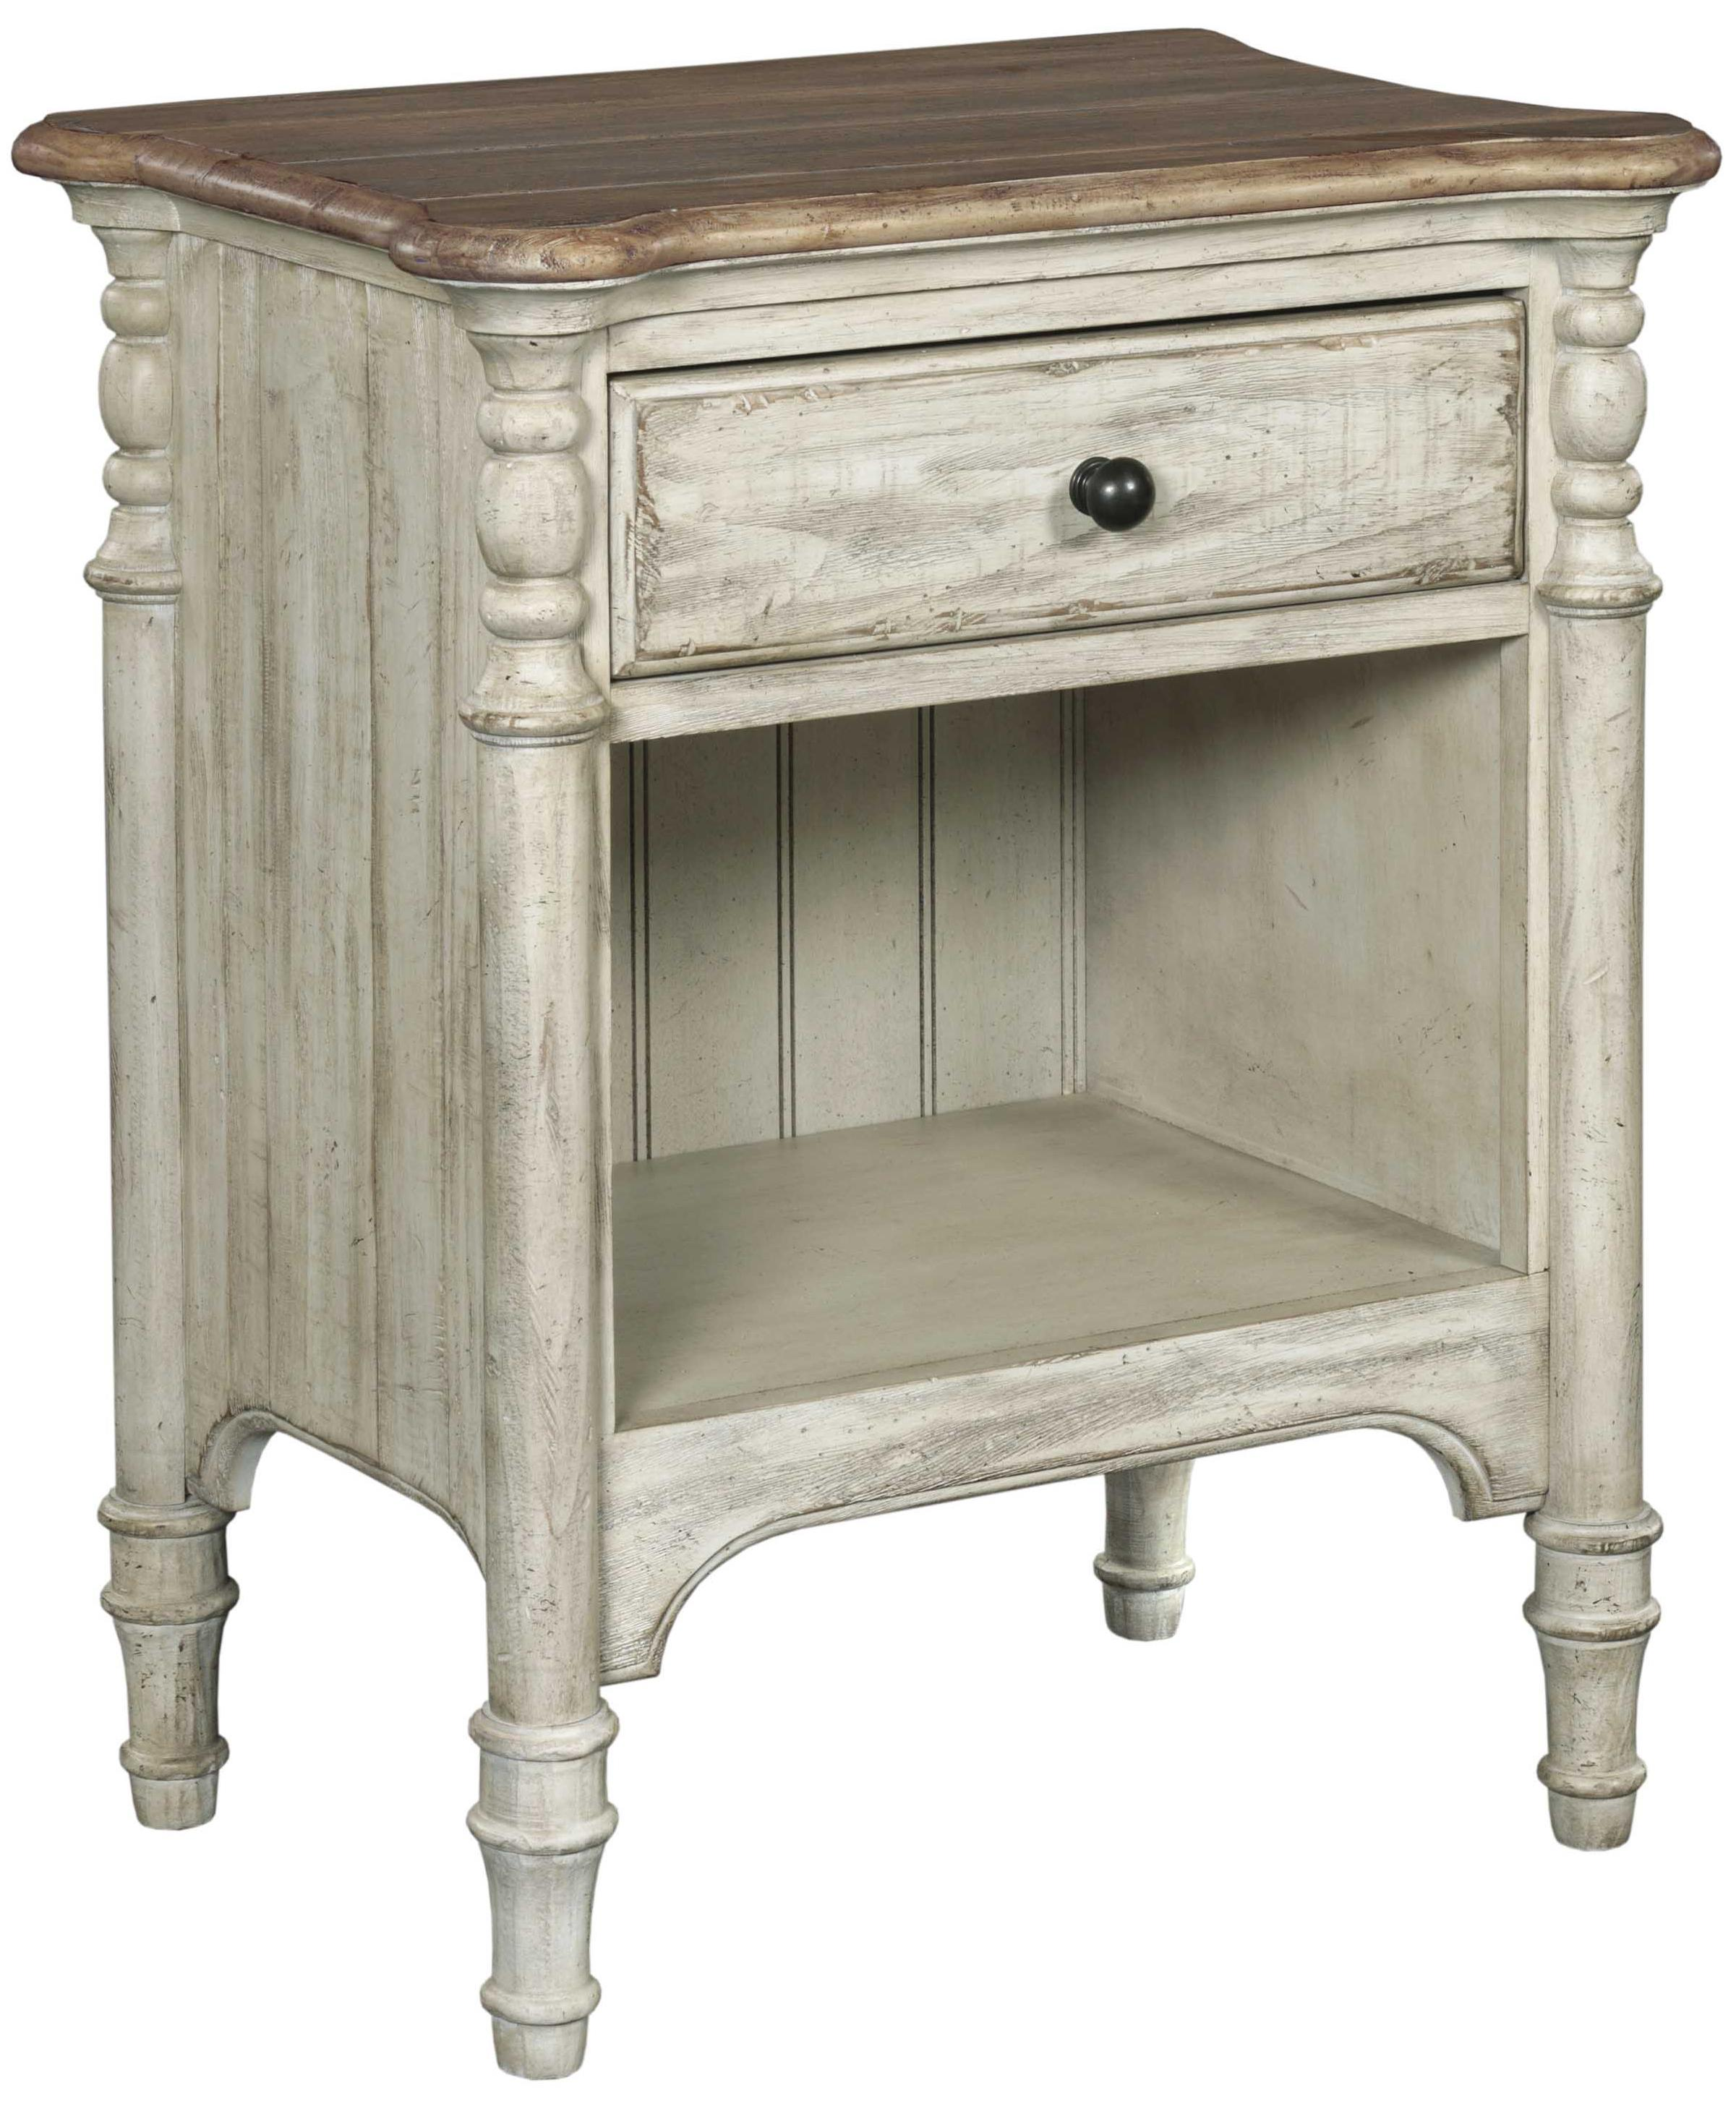 Kincaid Furniture Weatherford Open Nightstand - Item Number: 75-143